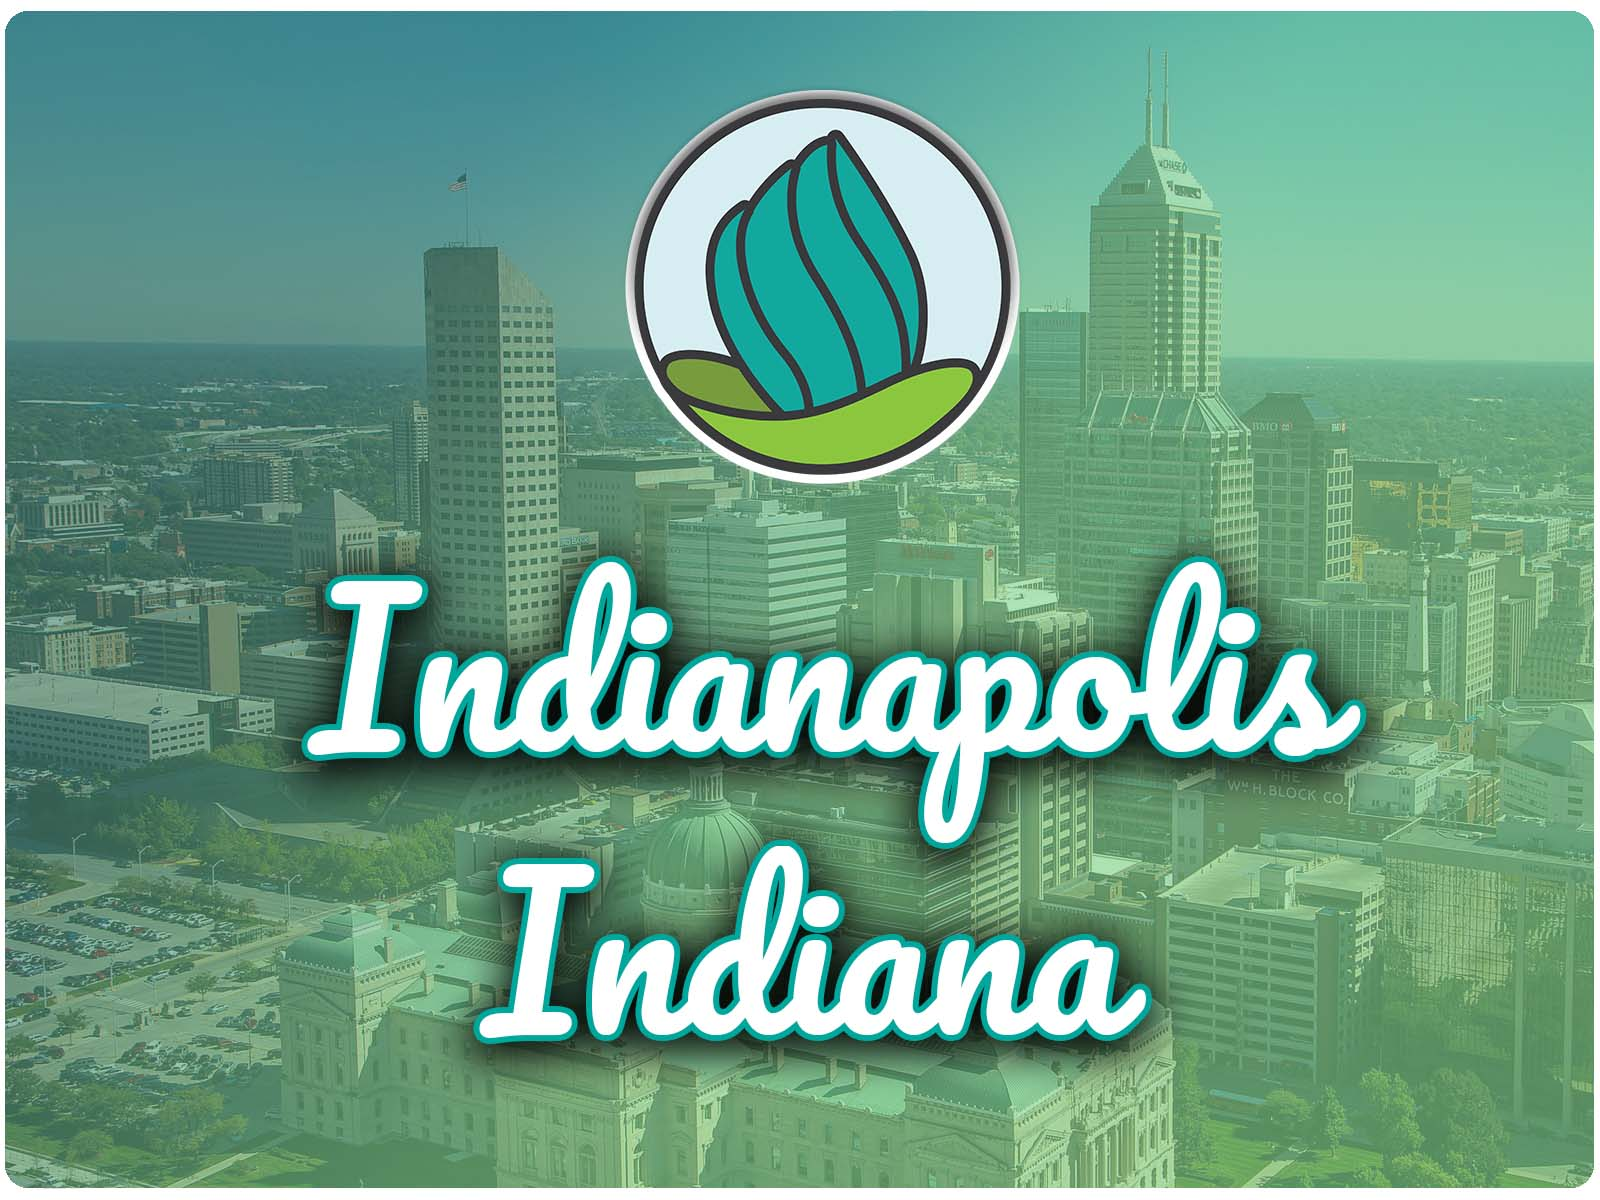 Image of tall buildings and a blue-green gradient overlay, and the words 'Indianapolis, Indiana' in cursive and NDC logo on top